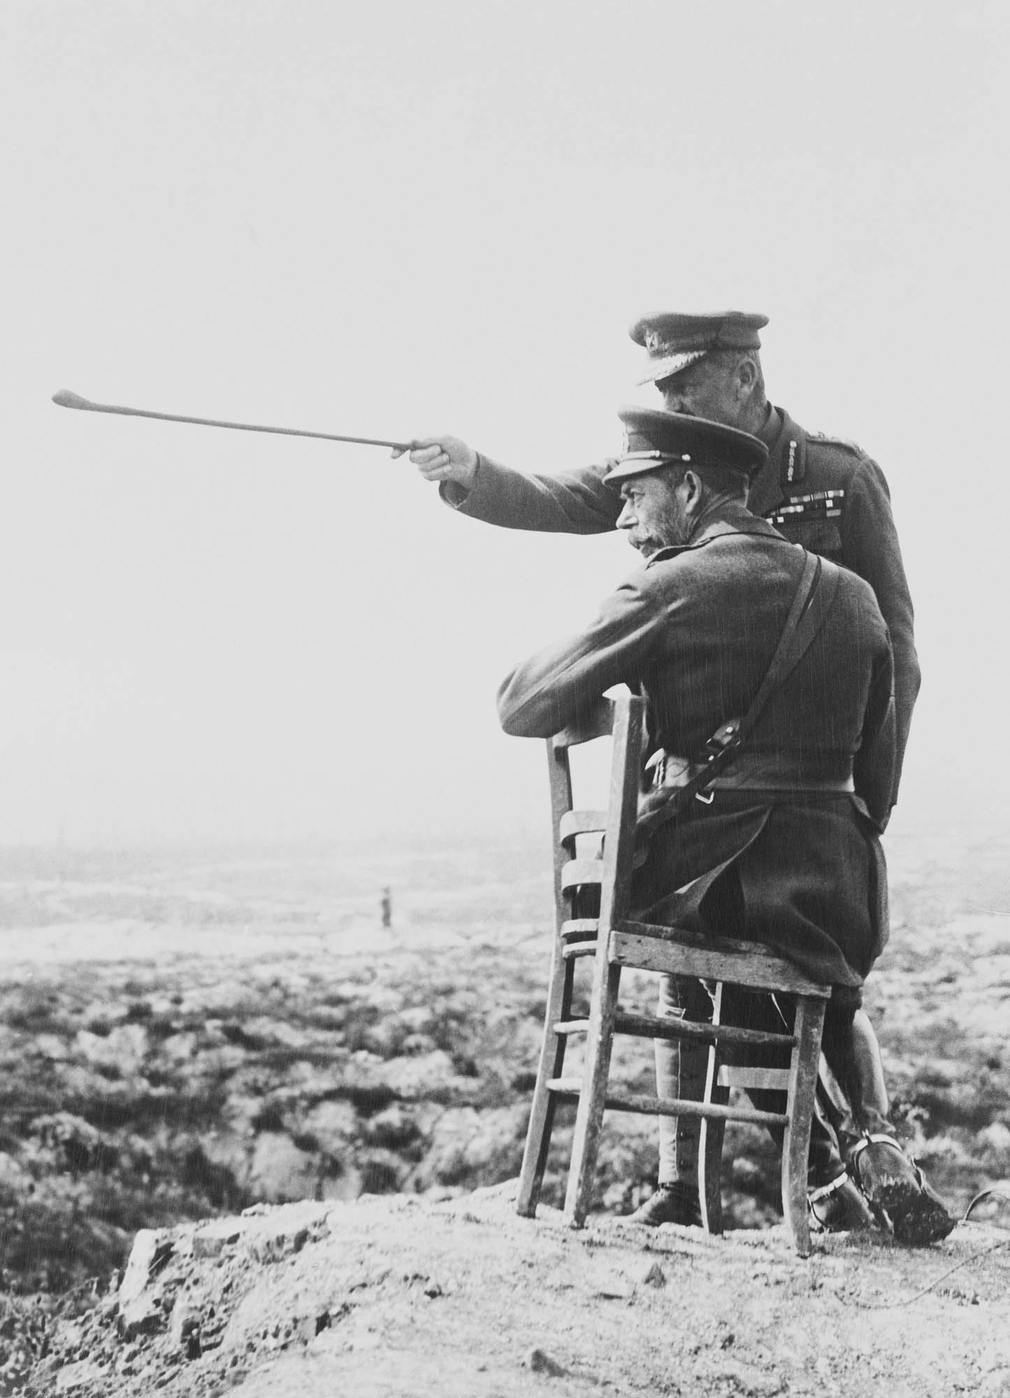 Photograph showing King George V (1865-1936) sitting on a chair on top of a spoil heap, talking with an unidentified gentleman wearing military uniform who is pointing his stick out, which the King is looking towards in the distance. There is a derelict l